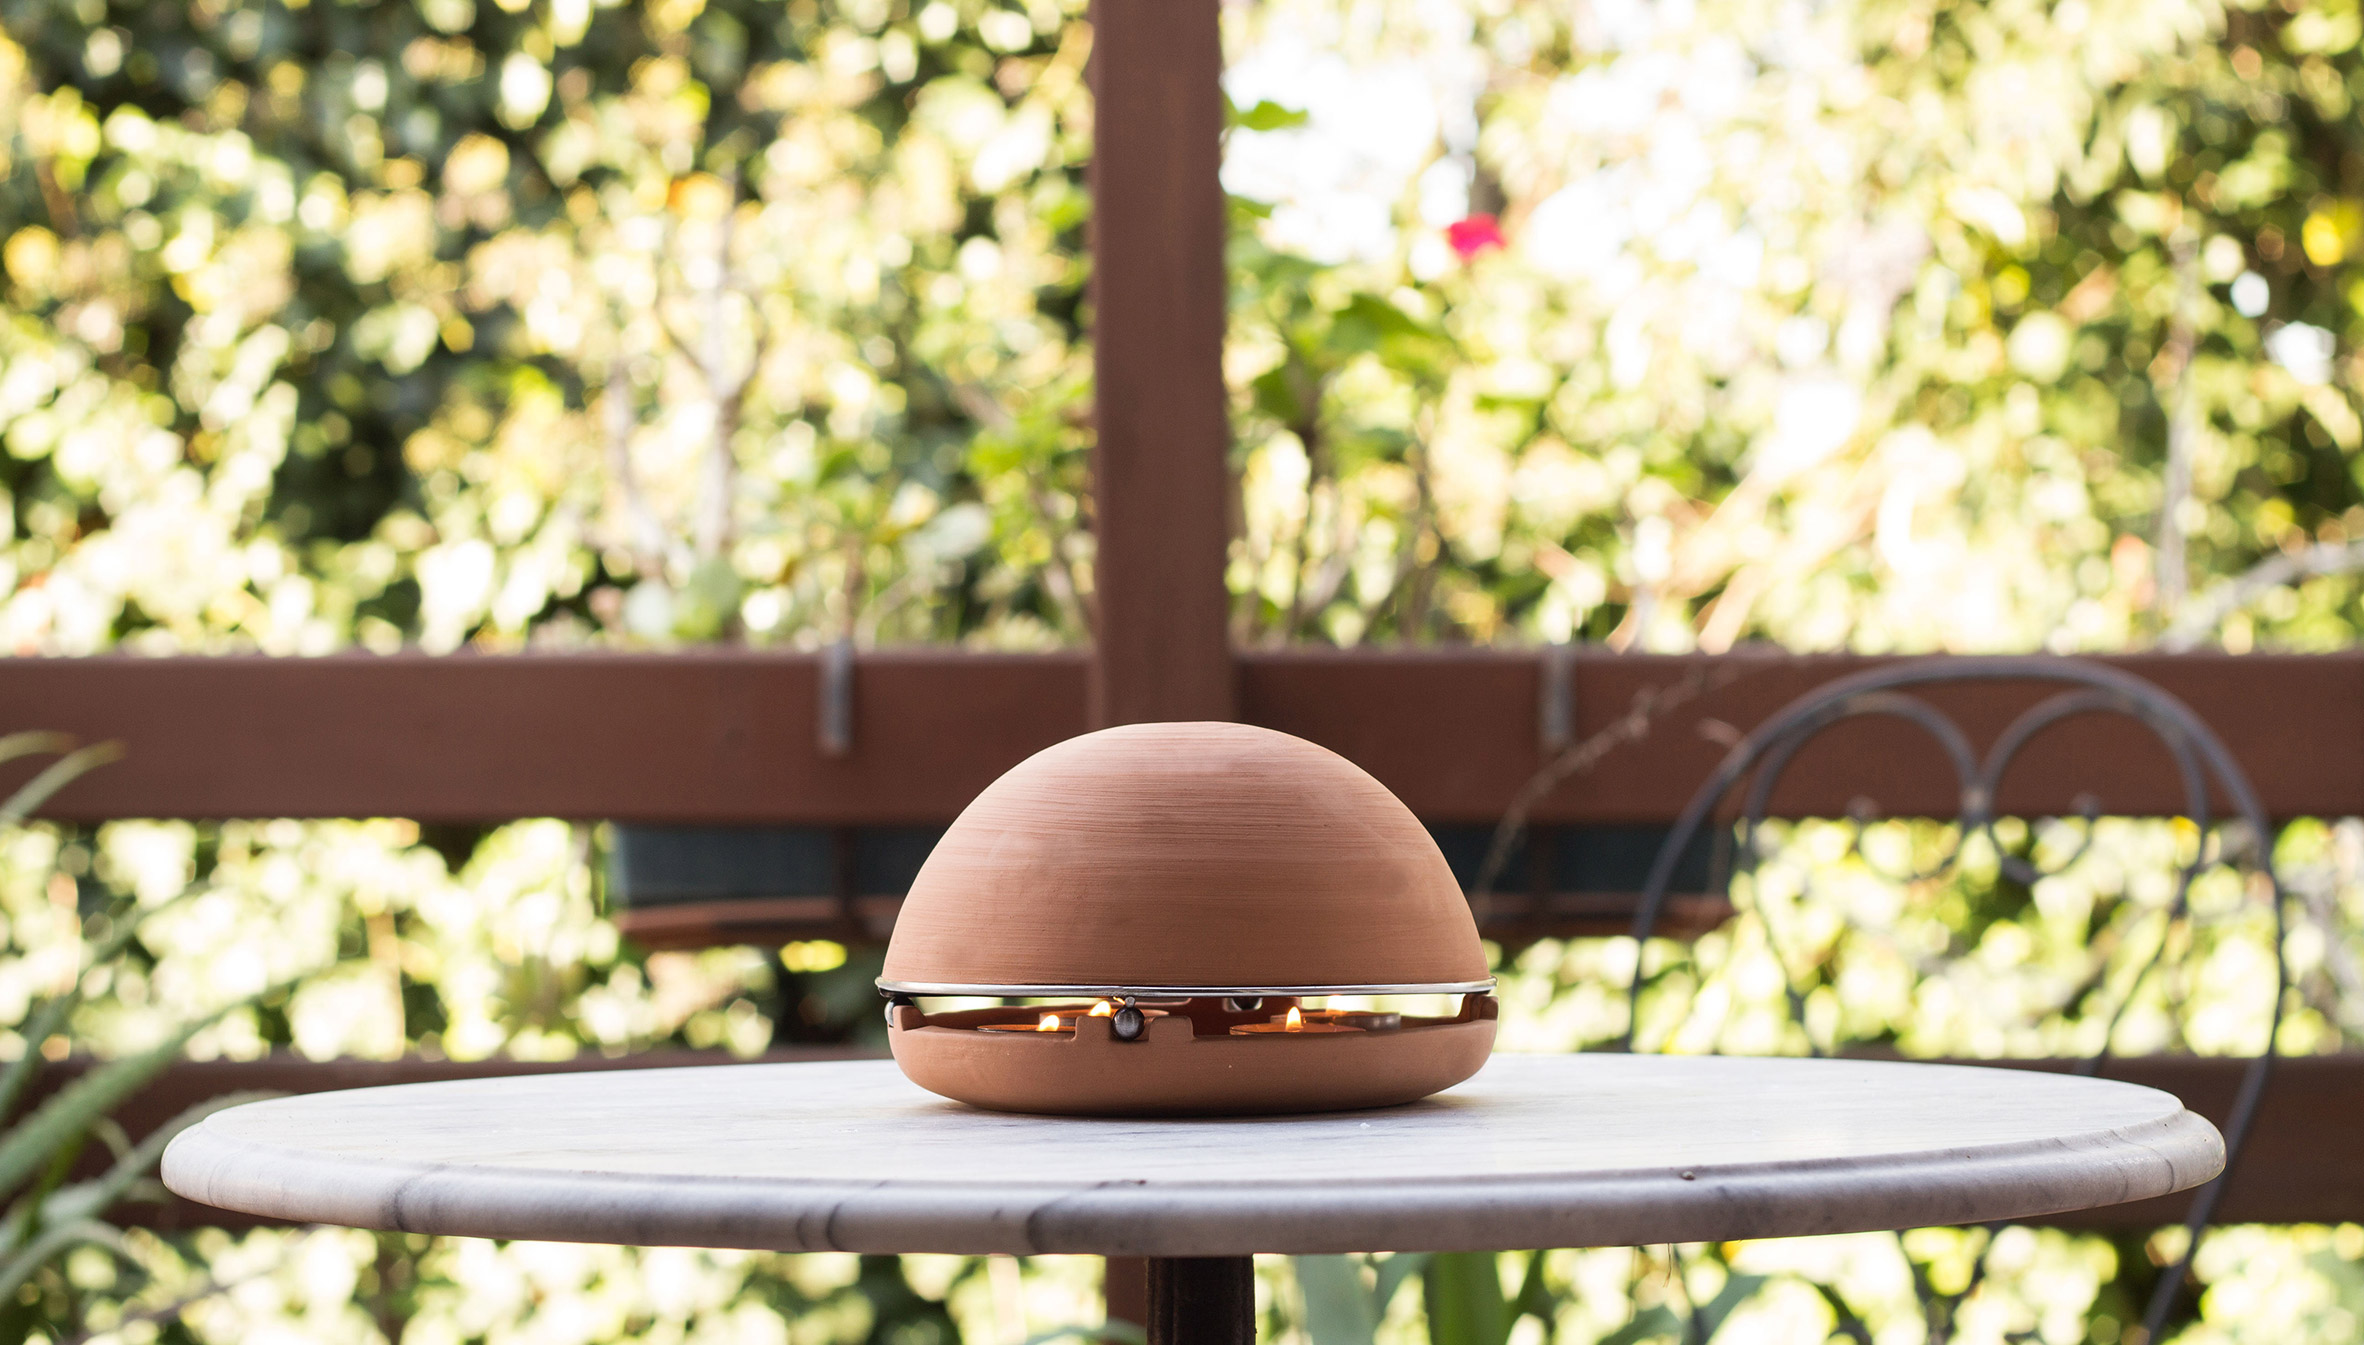 Electricity-free Egloo heater uses only candle power to warm a room